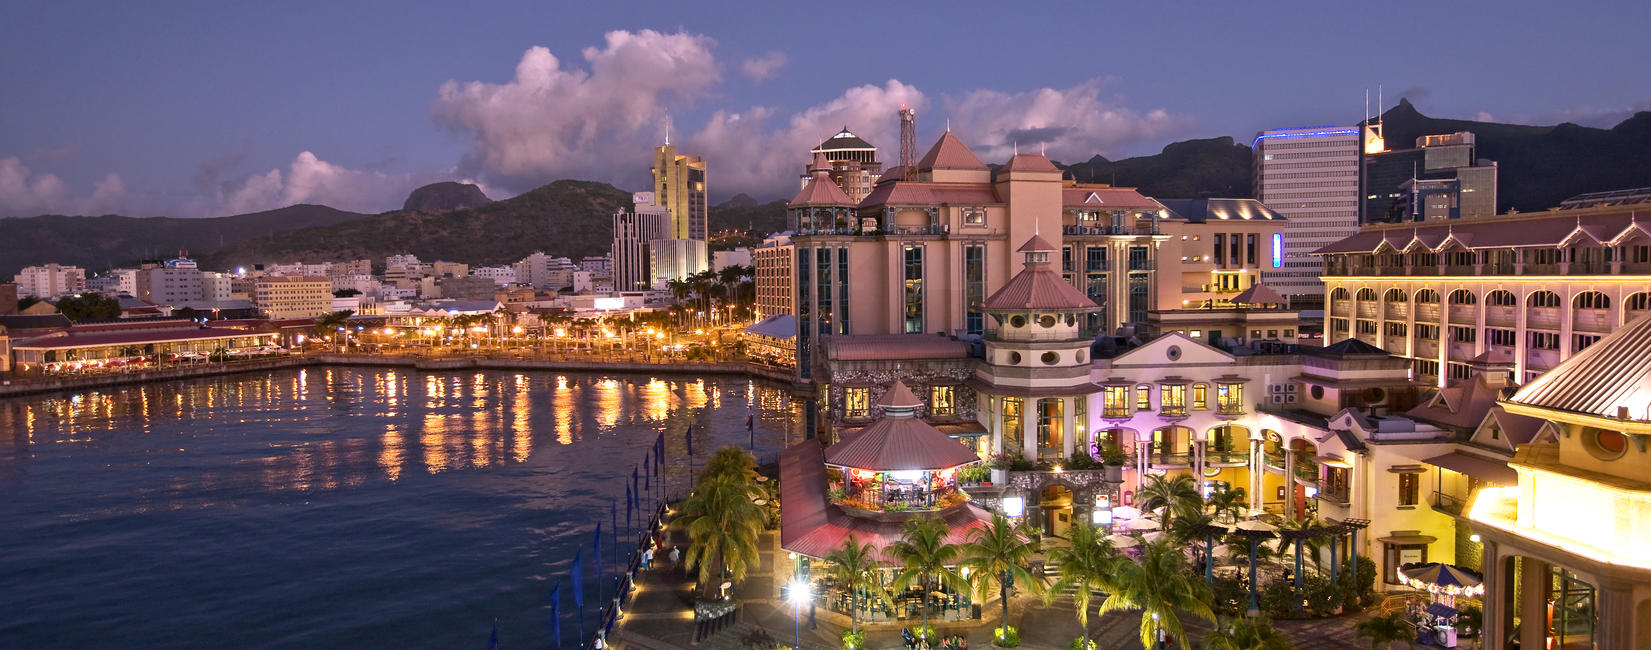 port louis capital mauritius